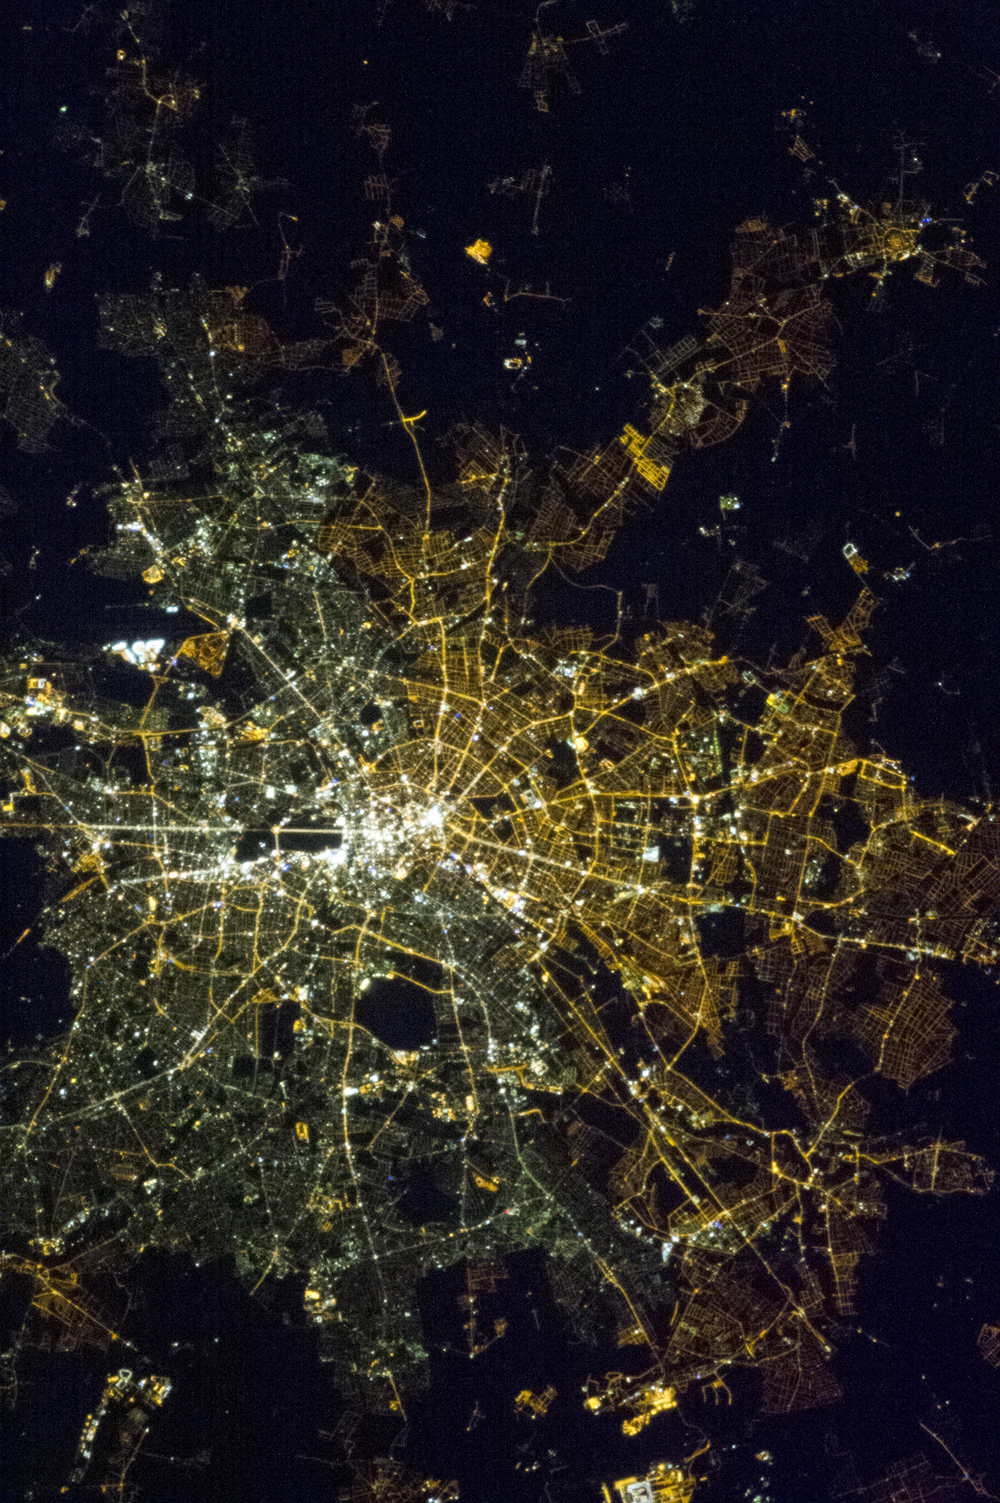 Berlin from space. Courtesy of Chris Hadfield/NASA. Used with permission.